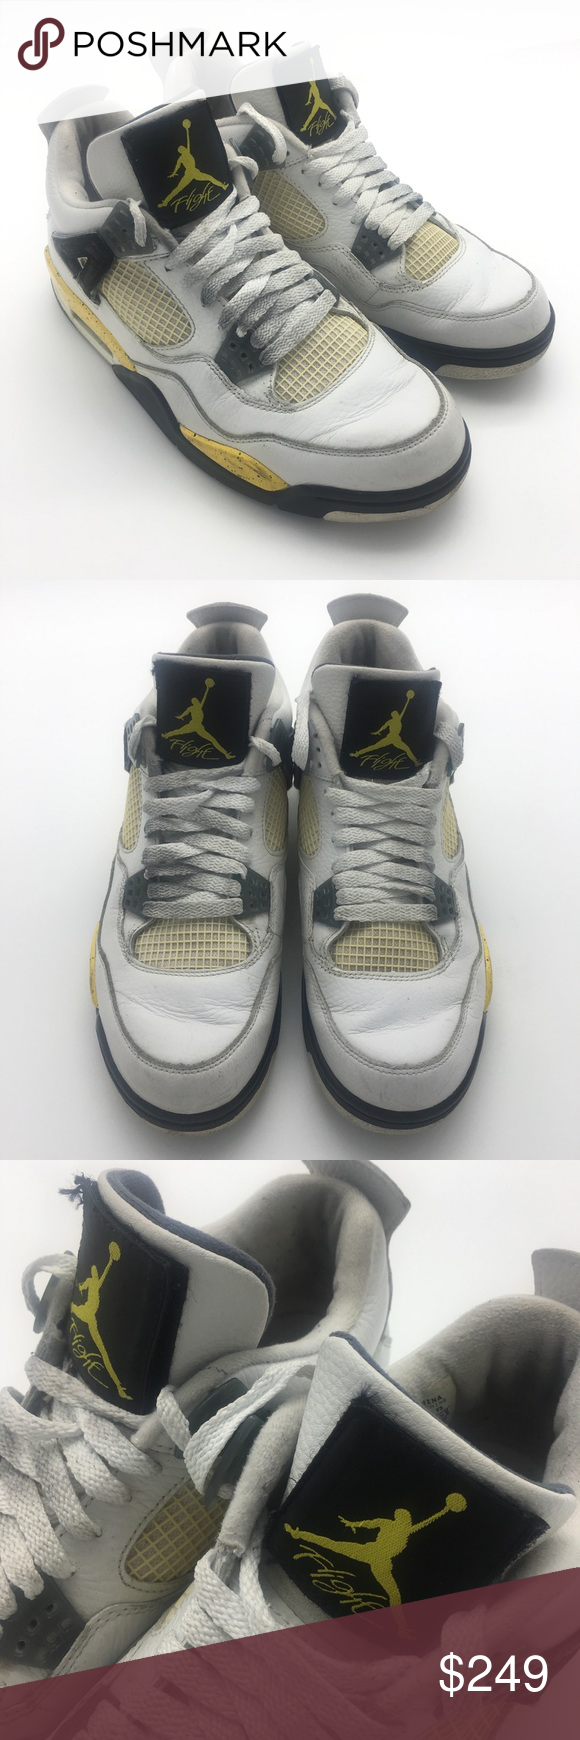 d70d2e532d949c Nike Air Jordan 4 LS White Tour Yellow IV 9.5 Air Jordan 4 Retro LS White  Tour Yellow IV s Size 9.5 2006 314254 171 Great condition for these 2005  Grails.